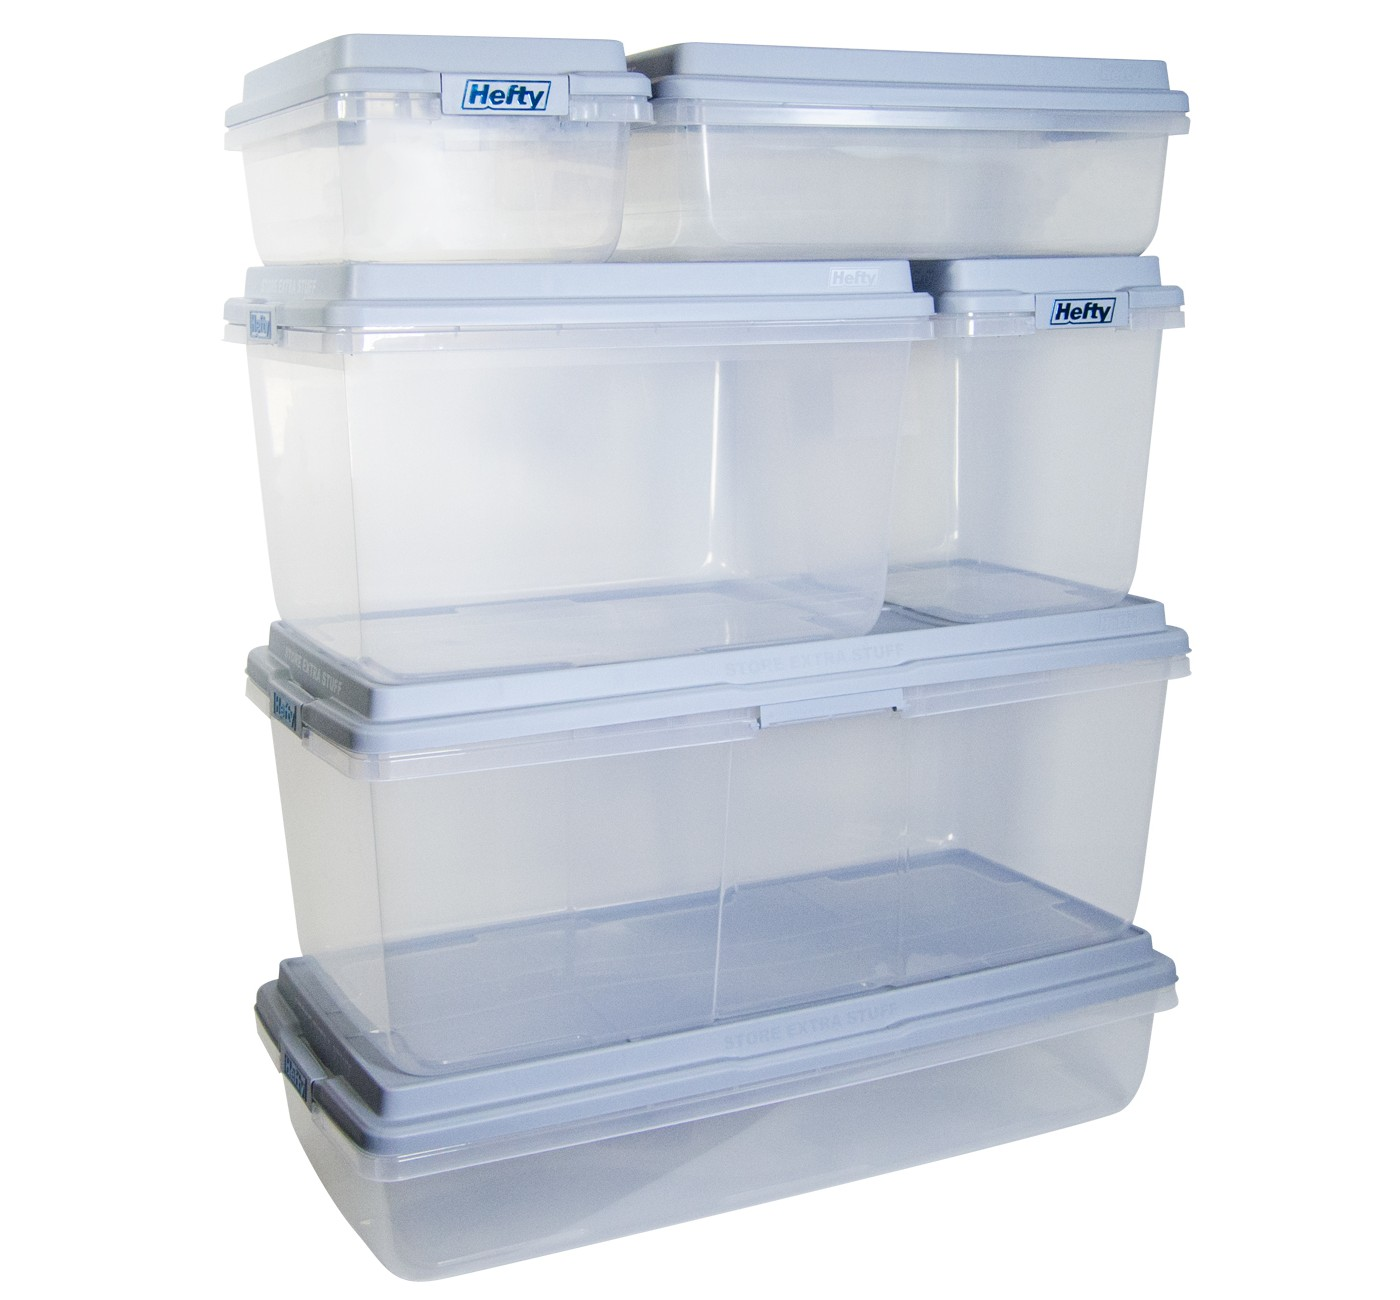 Hefty 72 Quart Storage Container - XL Clear Plastic Storage Bin with Gray HI-RISE Stackable Lid - image 7 of 7